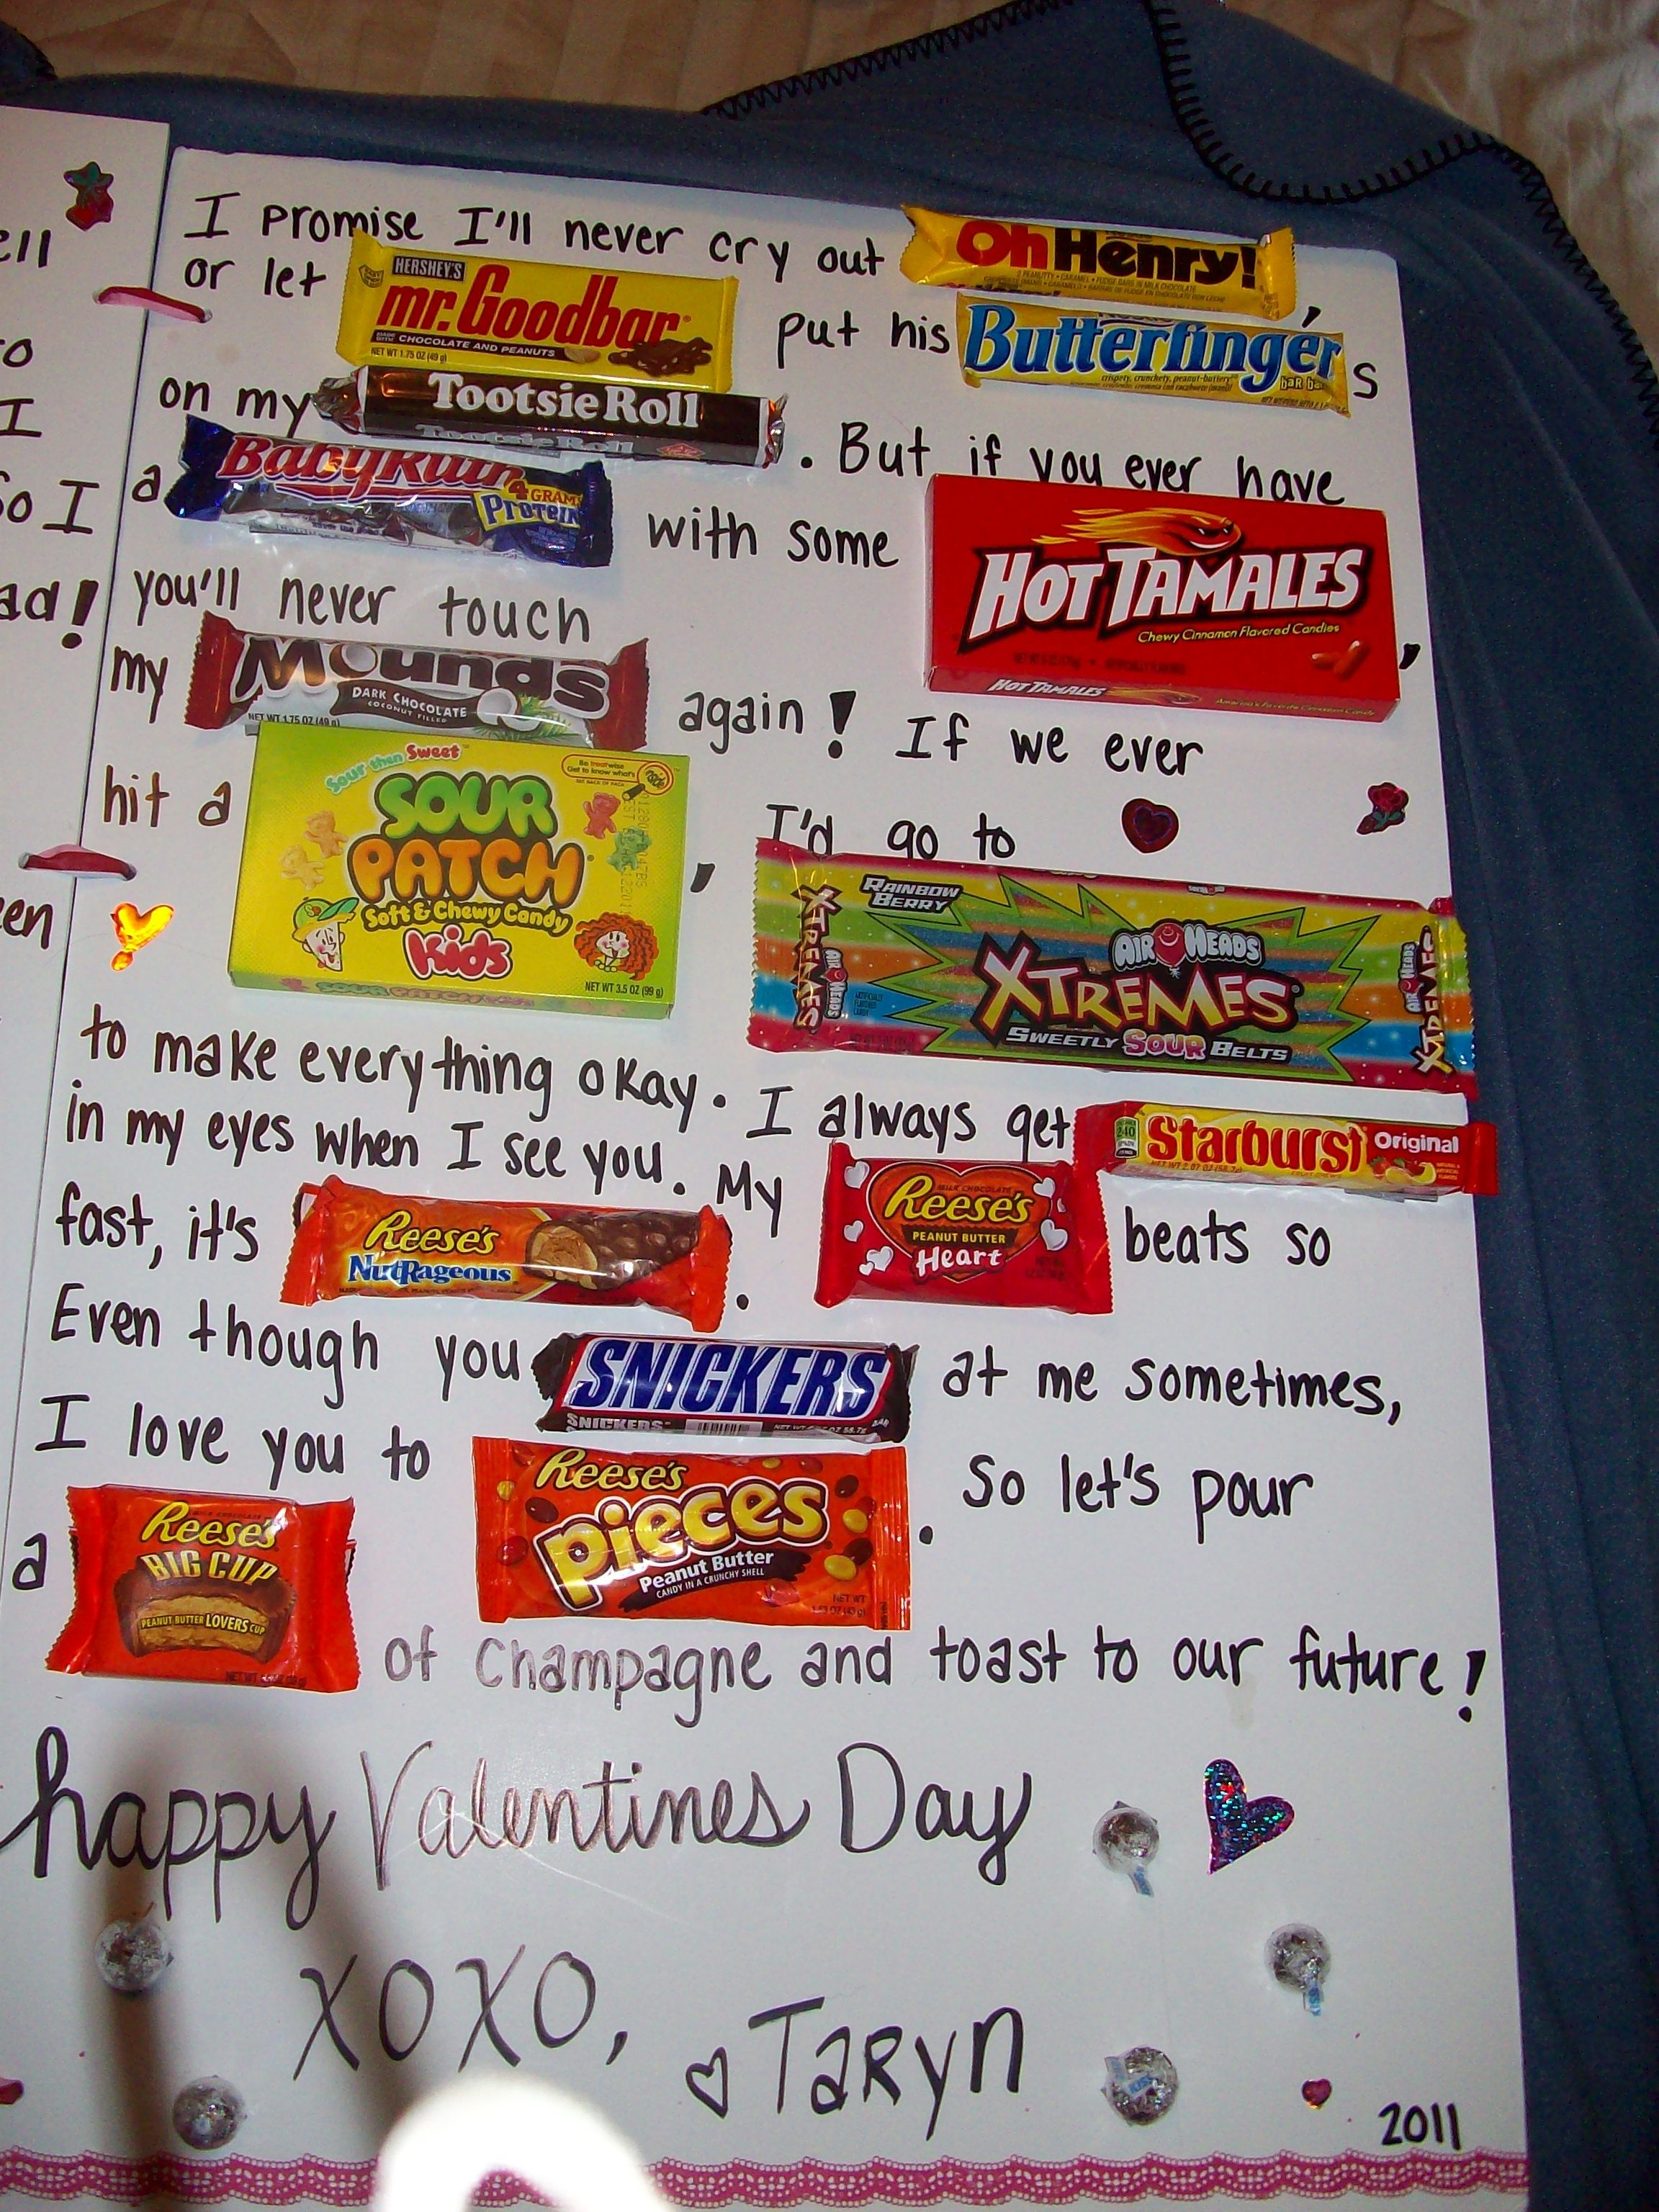 Part 2 Of Candy Card I Promise I Ll Never Let Oh Henry